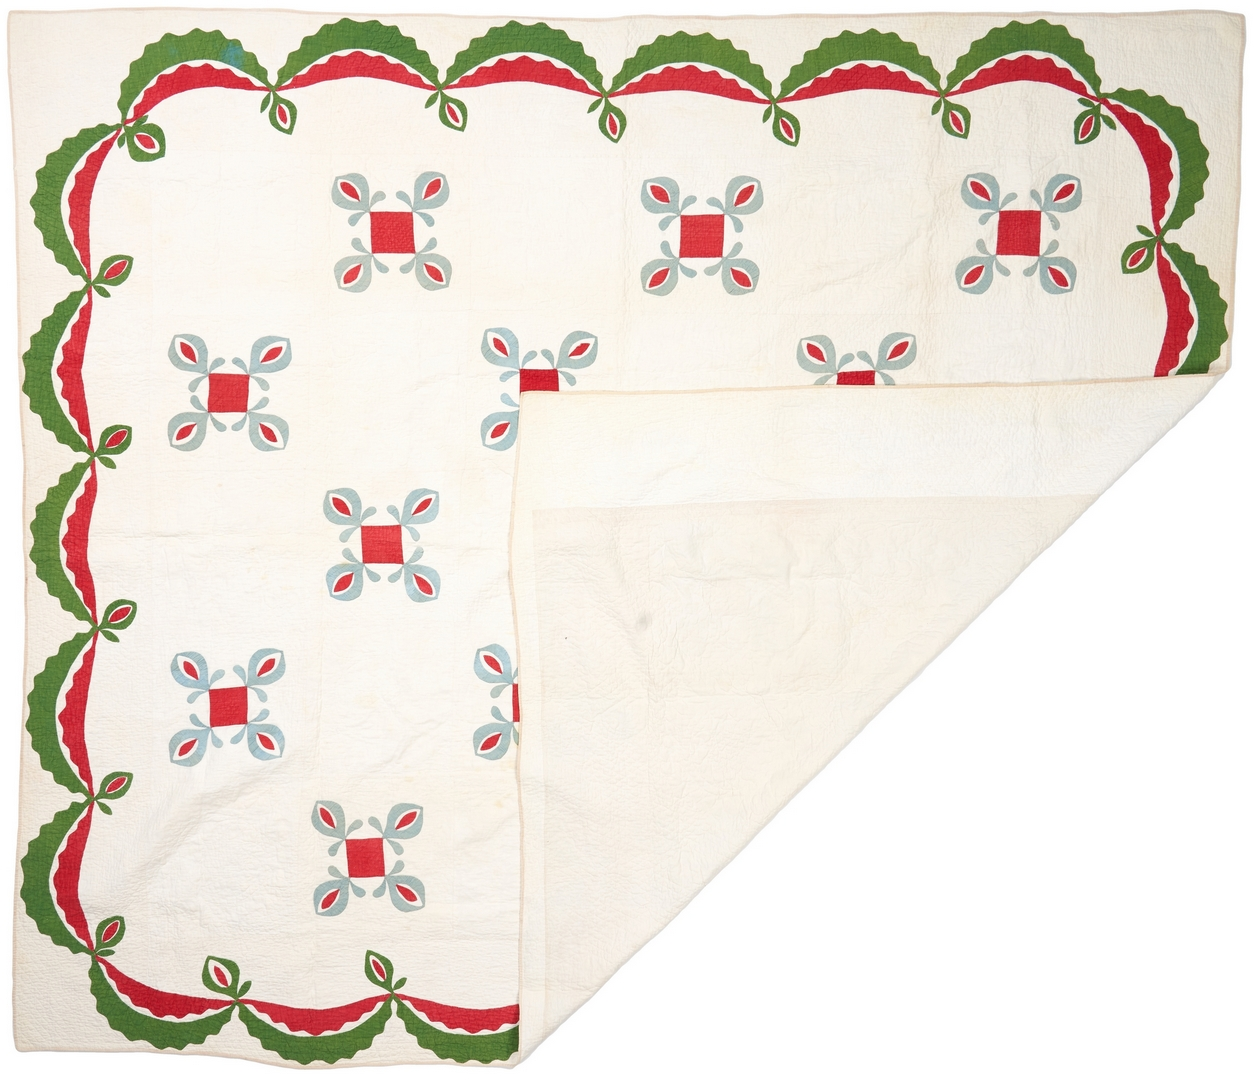 Lot 874: 3 Southern/East TN Pieced Cotton Quilts, incl. Whig Rose